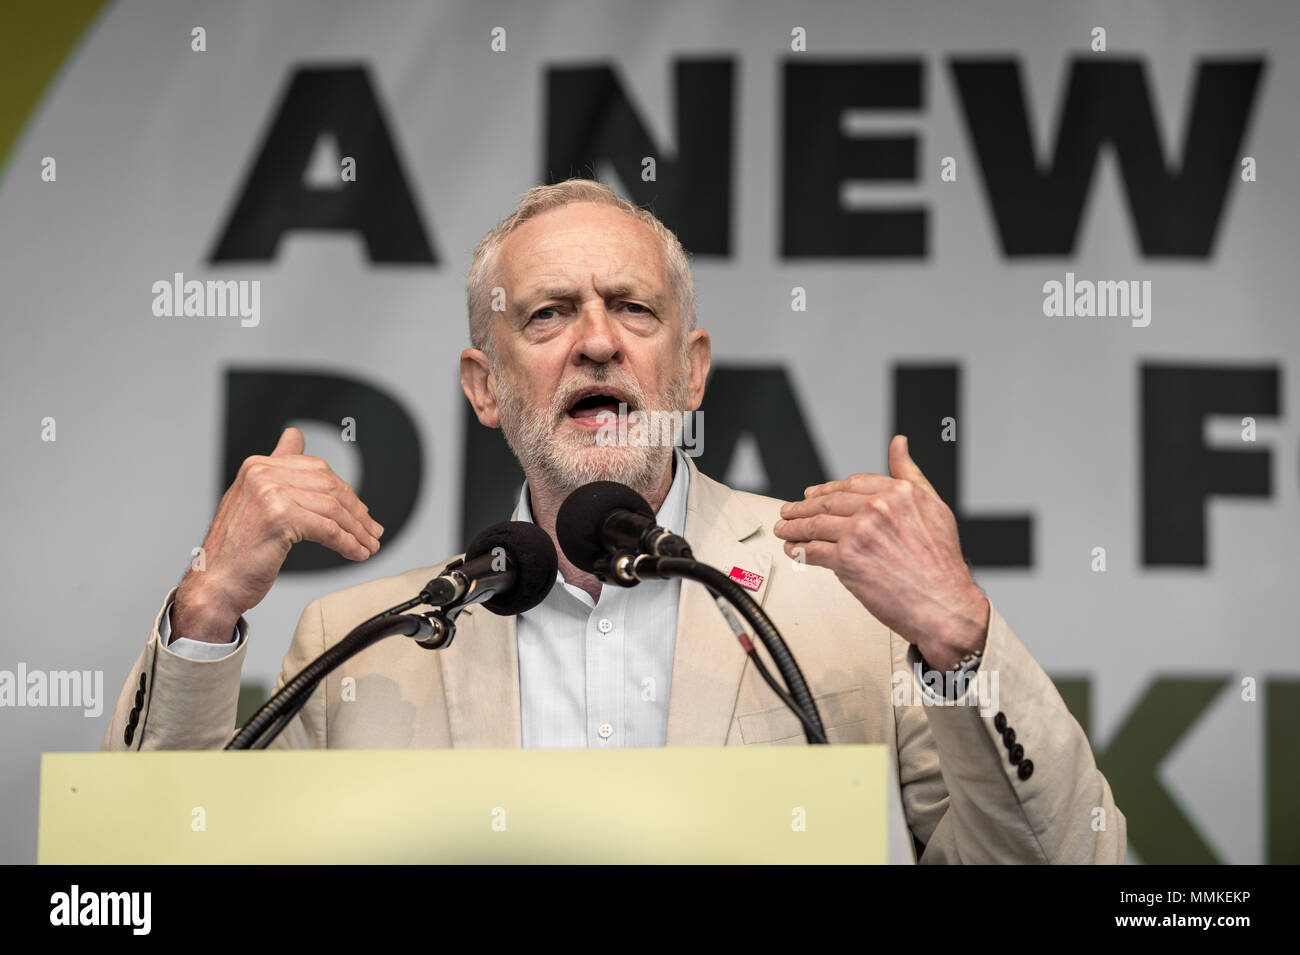 London, UK. 12th May, 2018. Jeremy Corbyn, The Labour Party leader, speaks to a crowd of  thousands of trade unionists during a TUC rally in Hyde Park on the theme of 'a new deal for working people'. Credit: Guy Corbishley/Alamy Live News - Stock Image